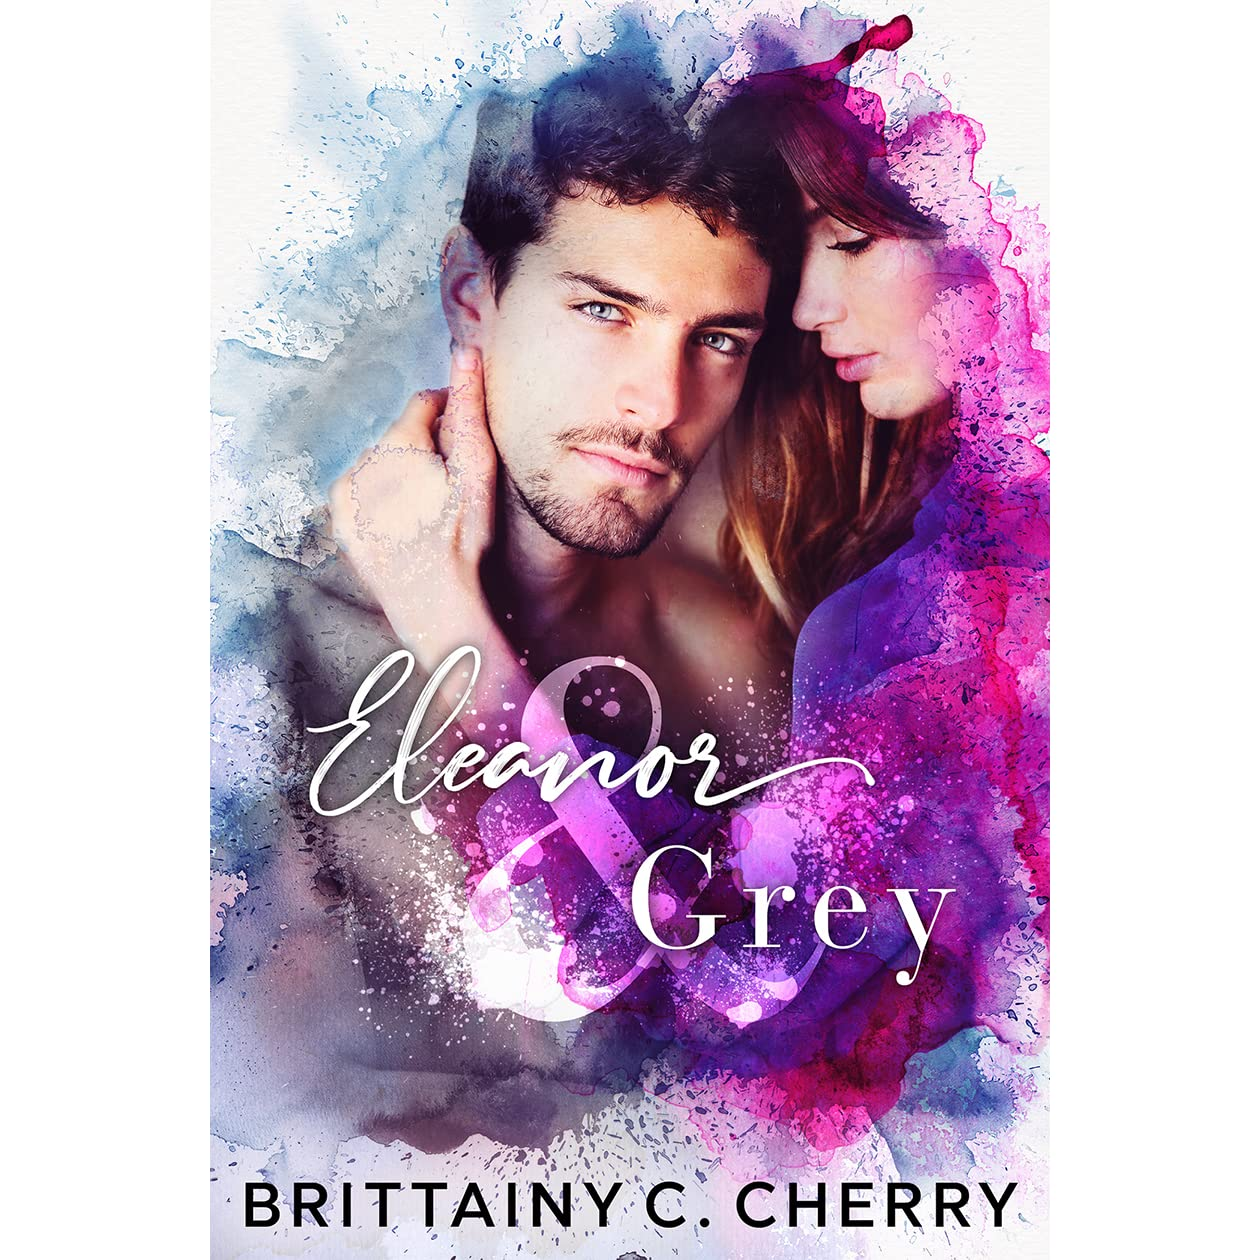 Image result for eleanor and grey brittany c cherry